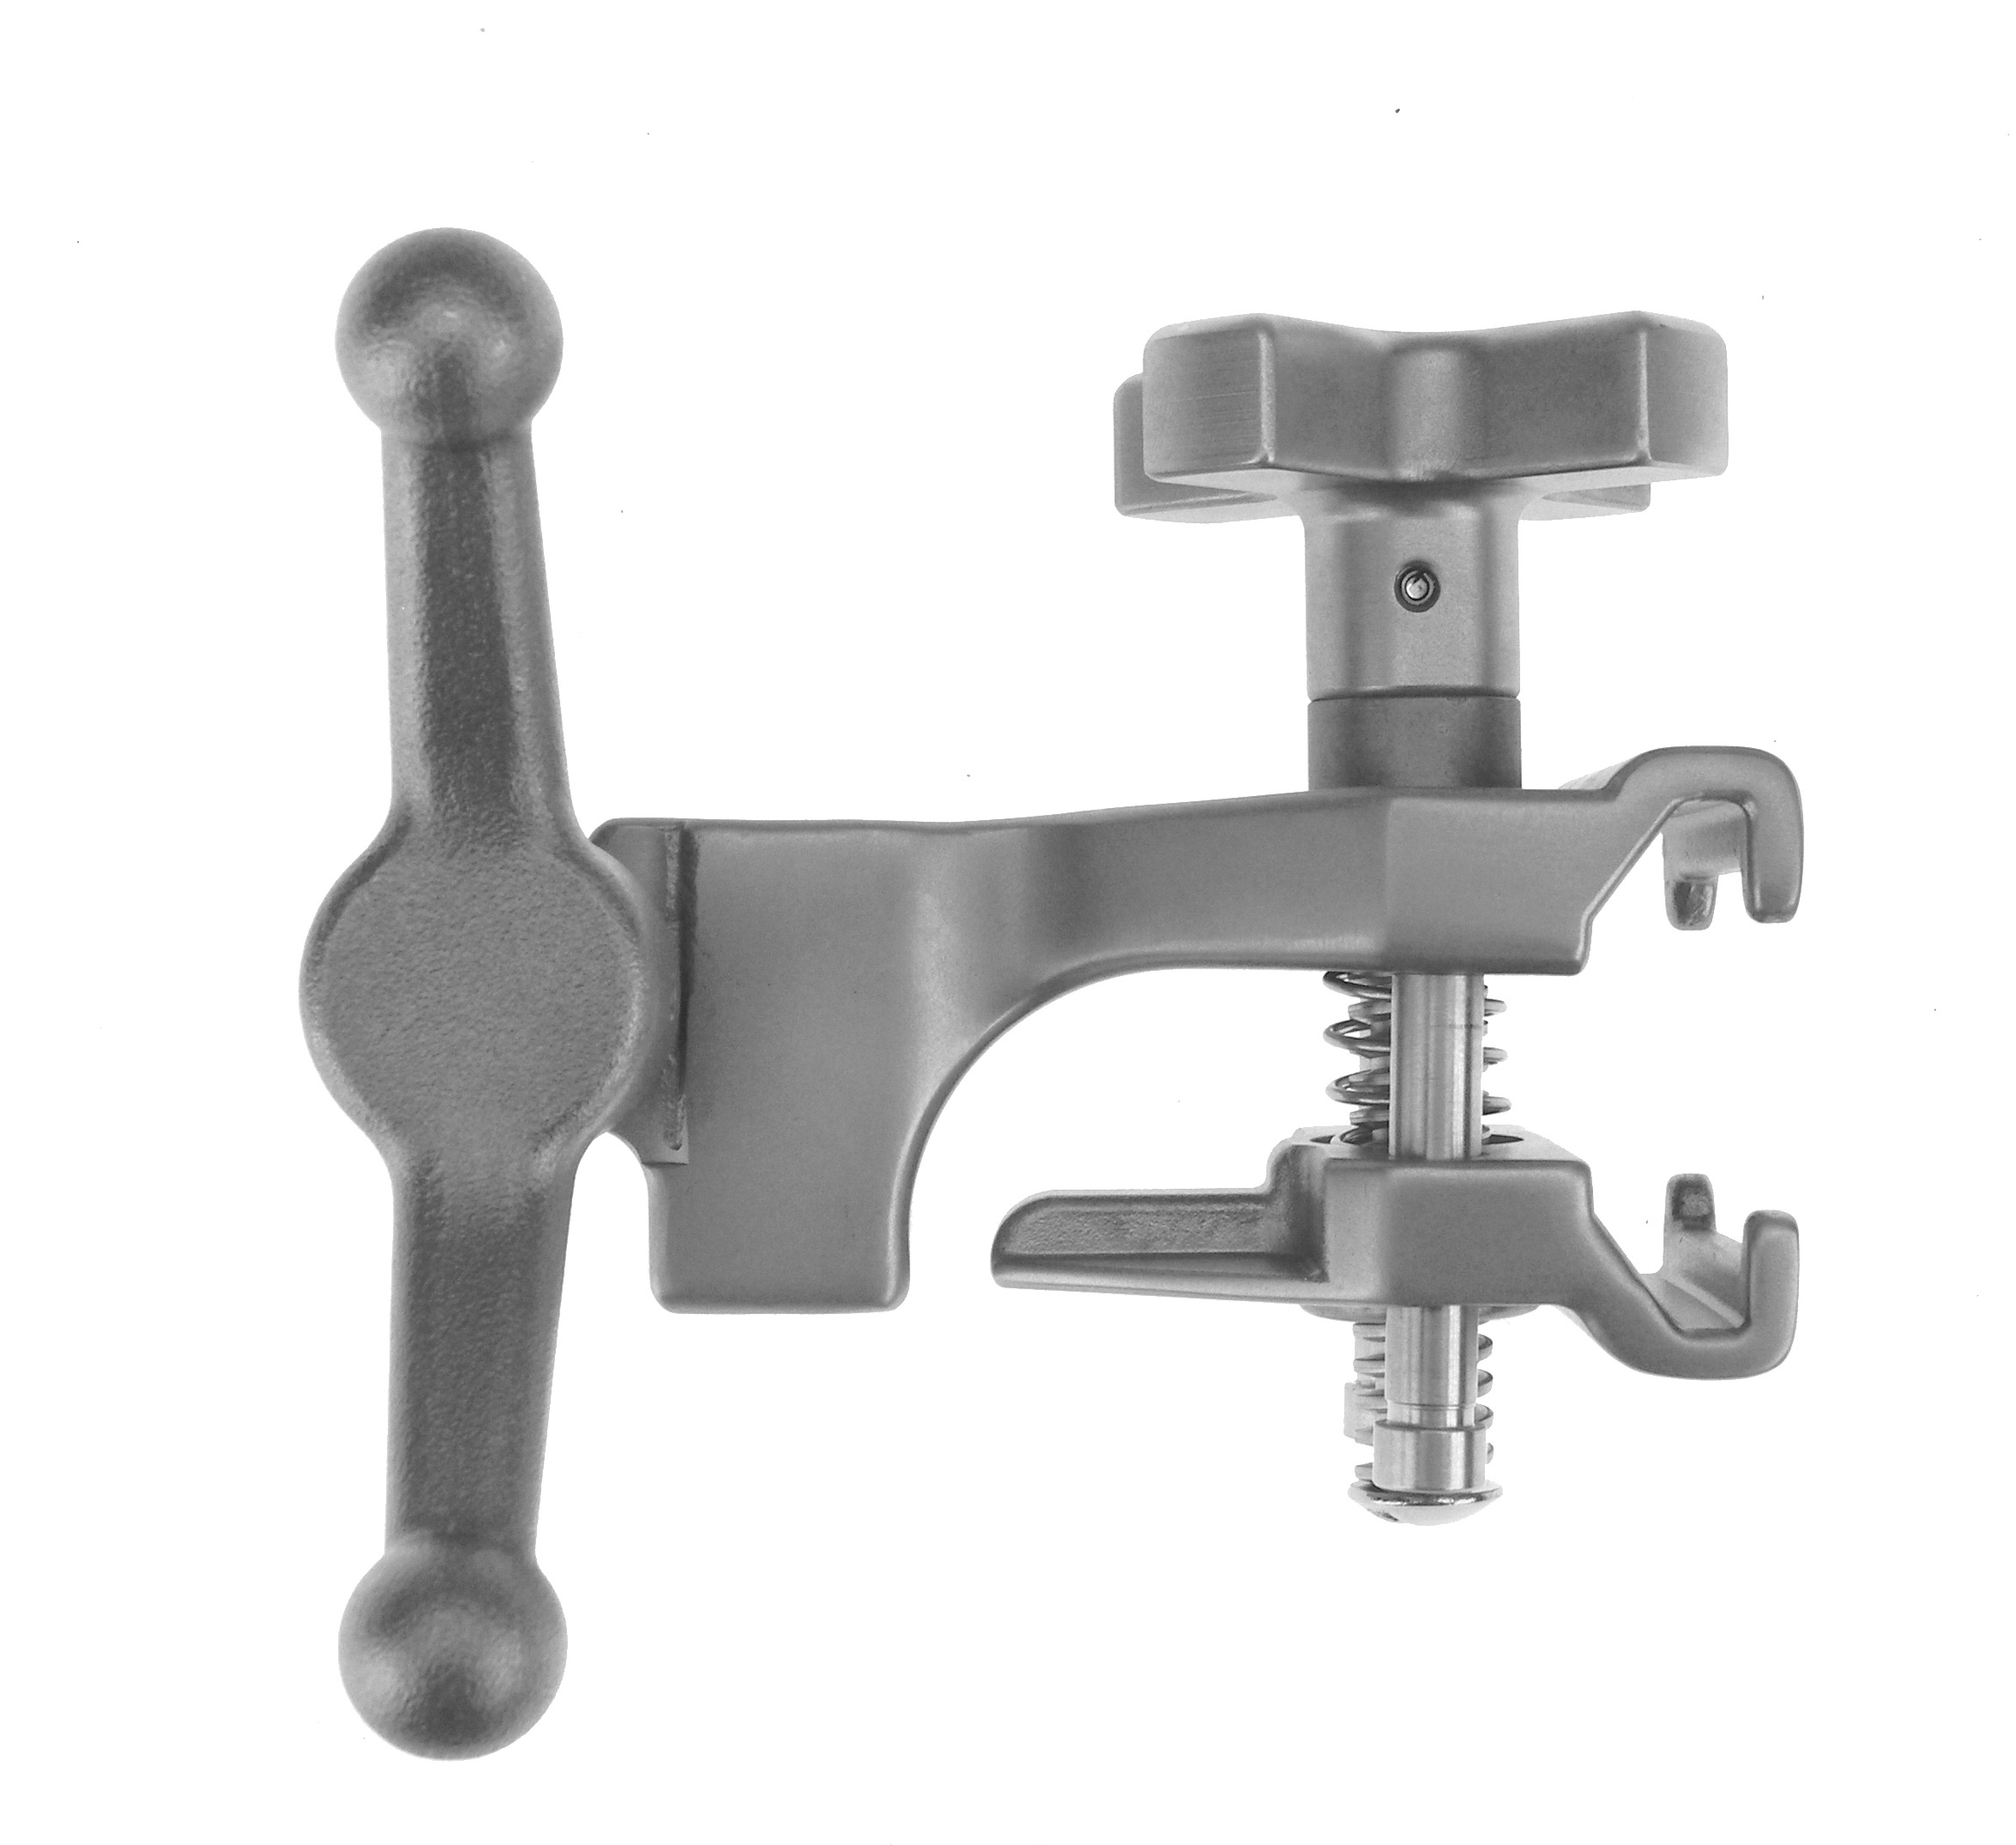 Rultract 4110S Table Clamp